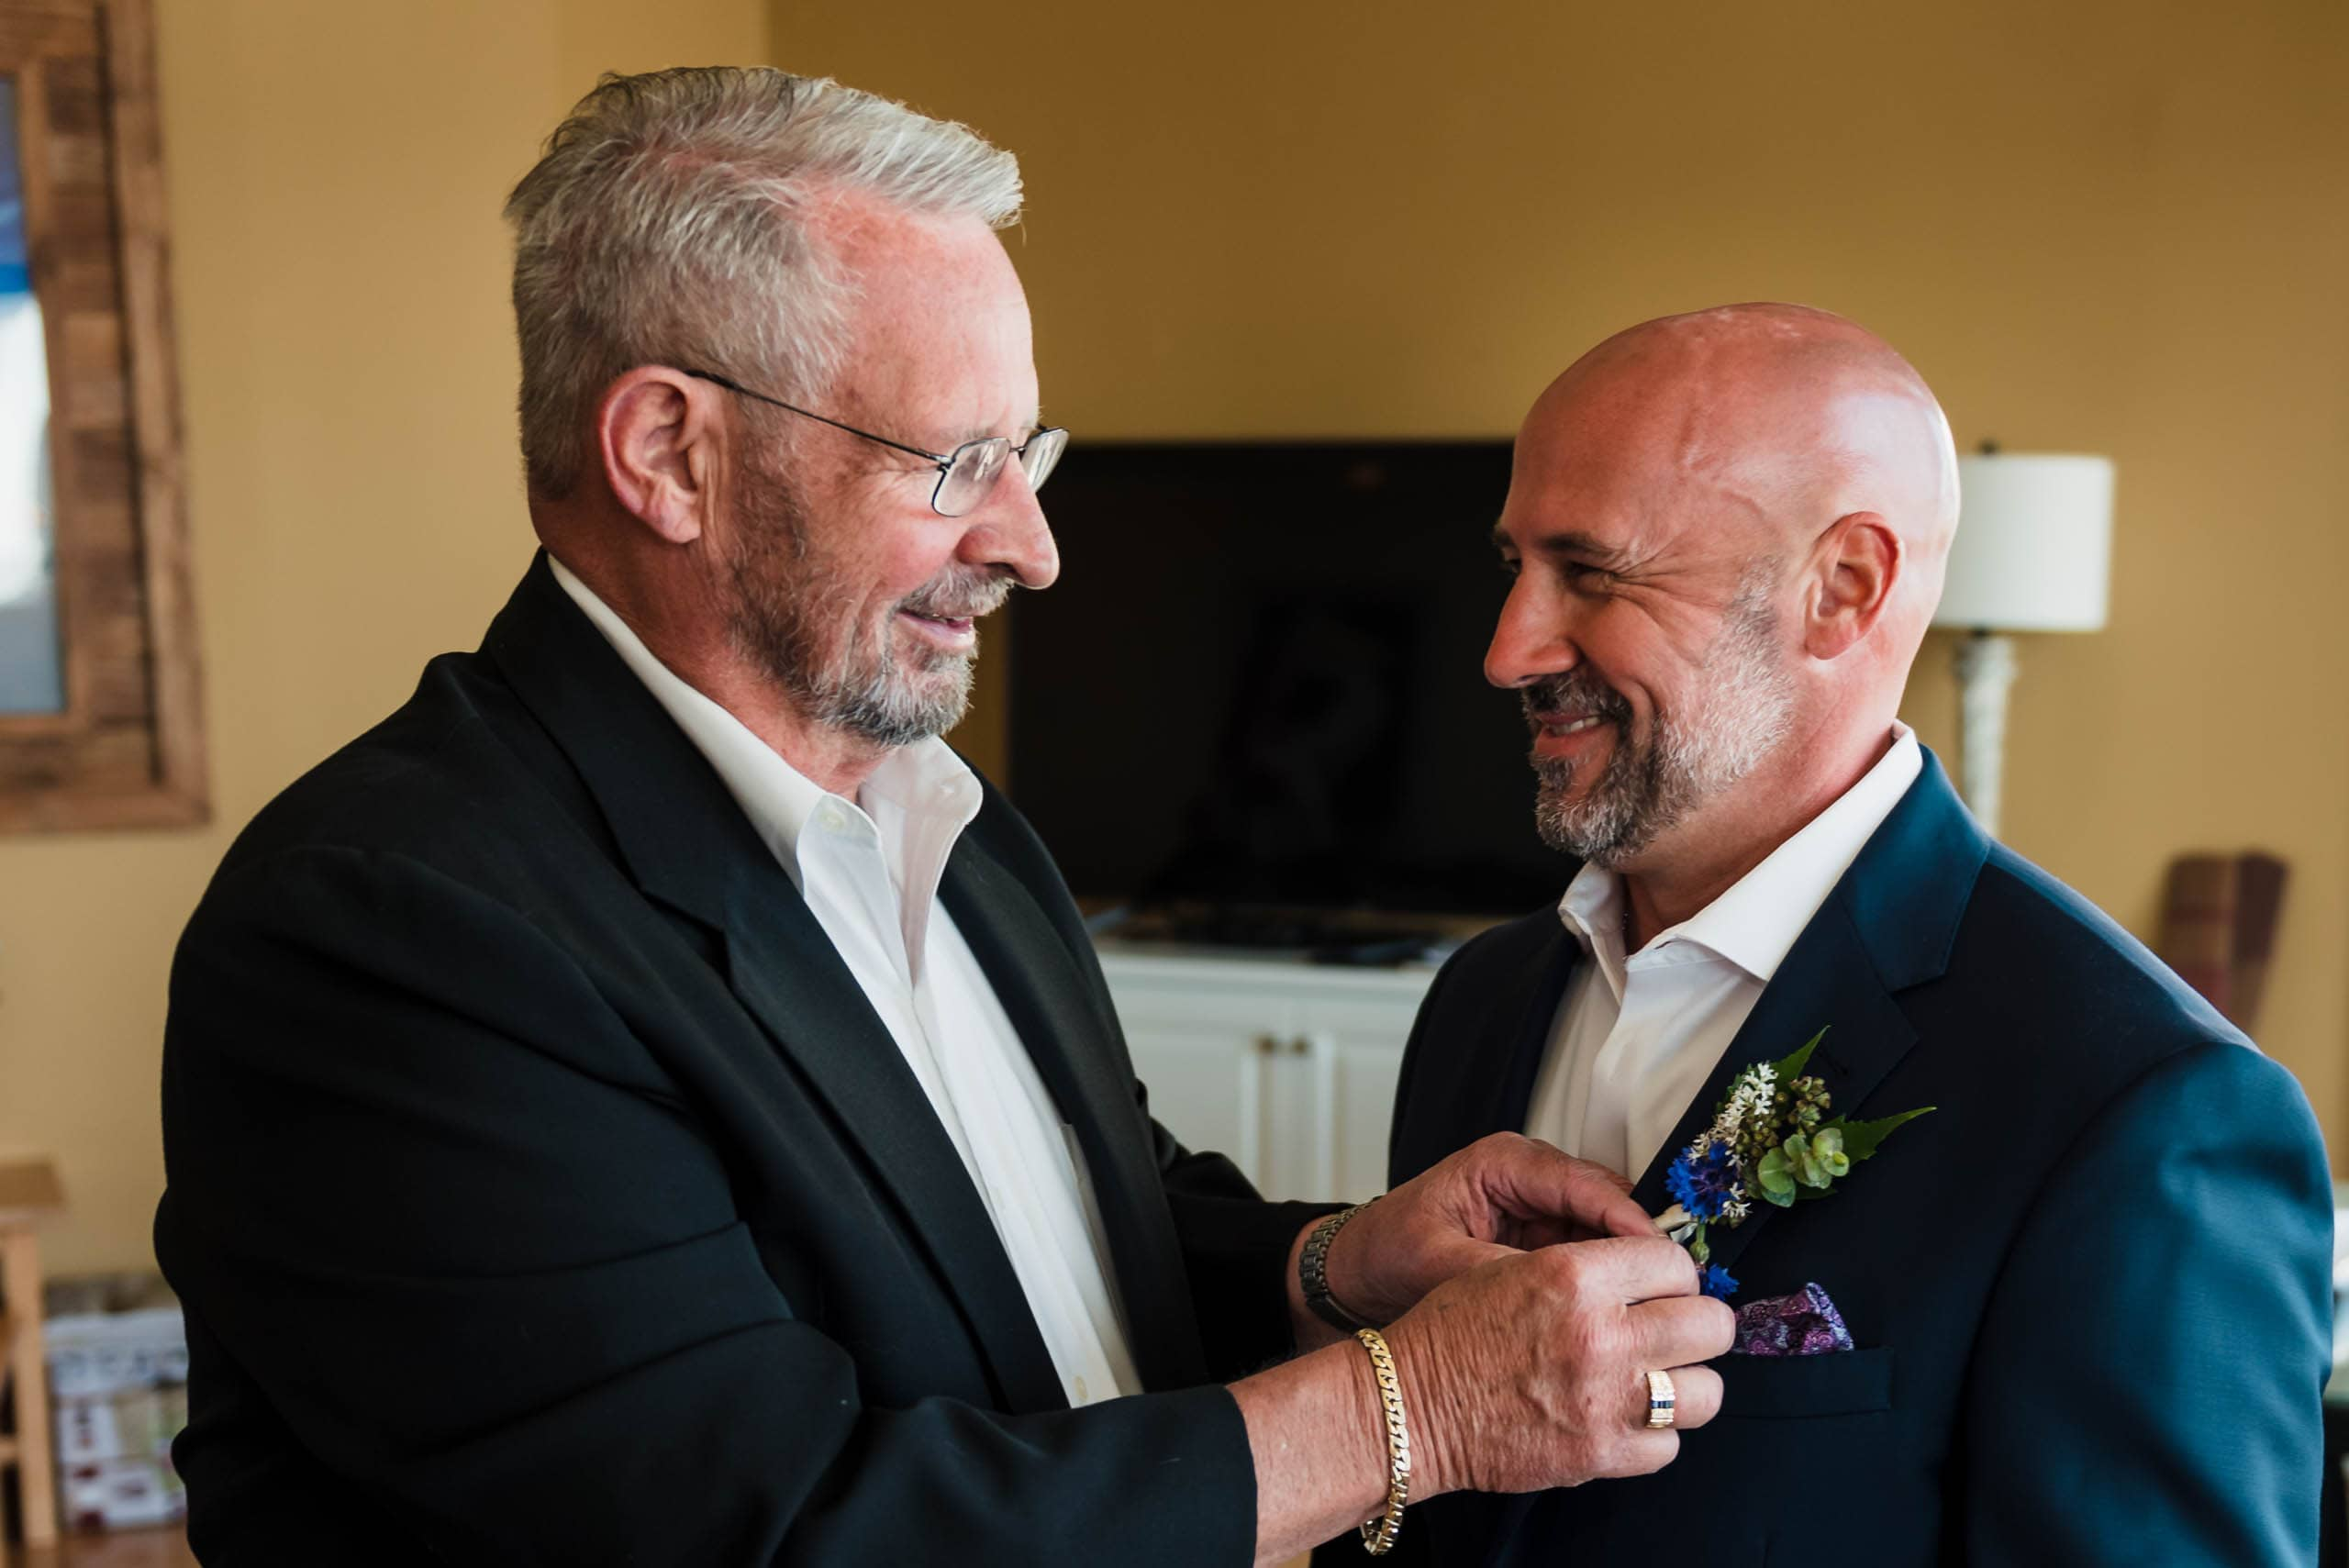 father of the groom pinning boutonniere on groom at Fripp Island Beach Wedding by Susan DeLoach Photography SC wedding photographer